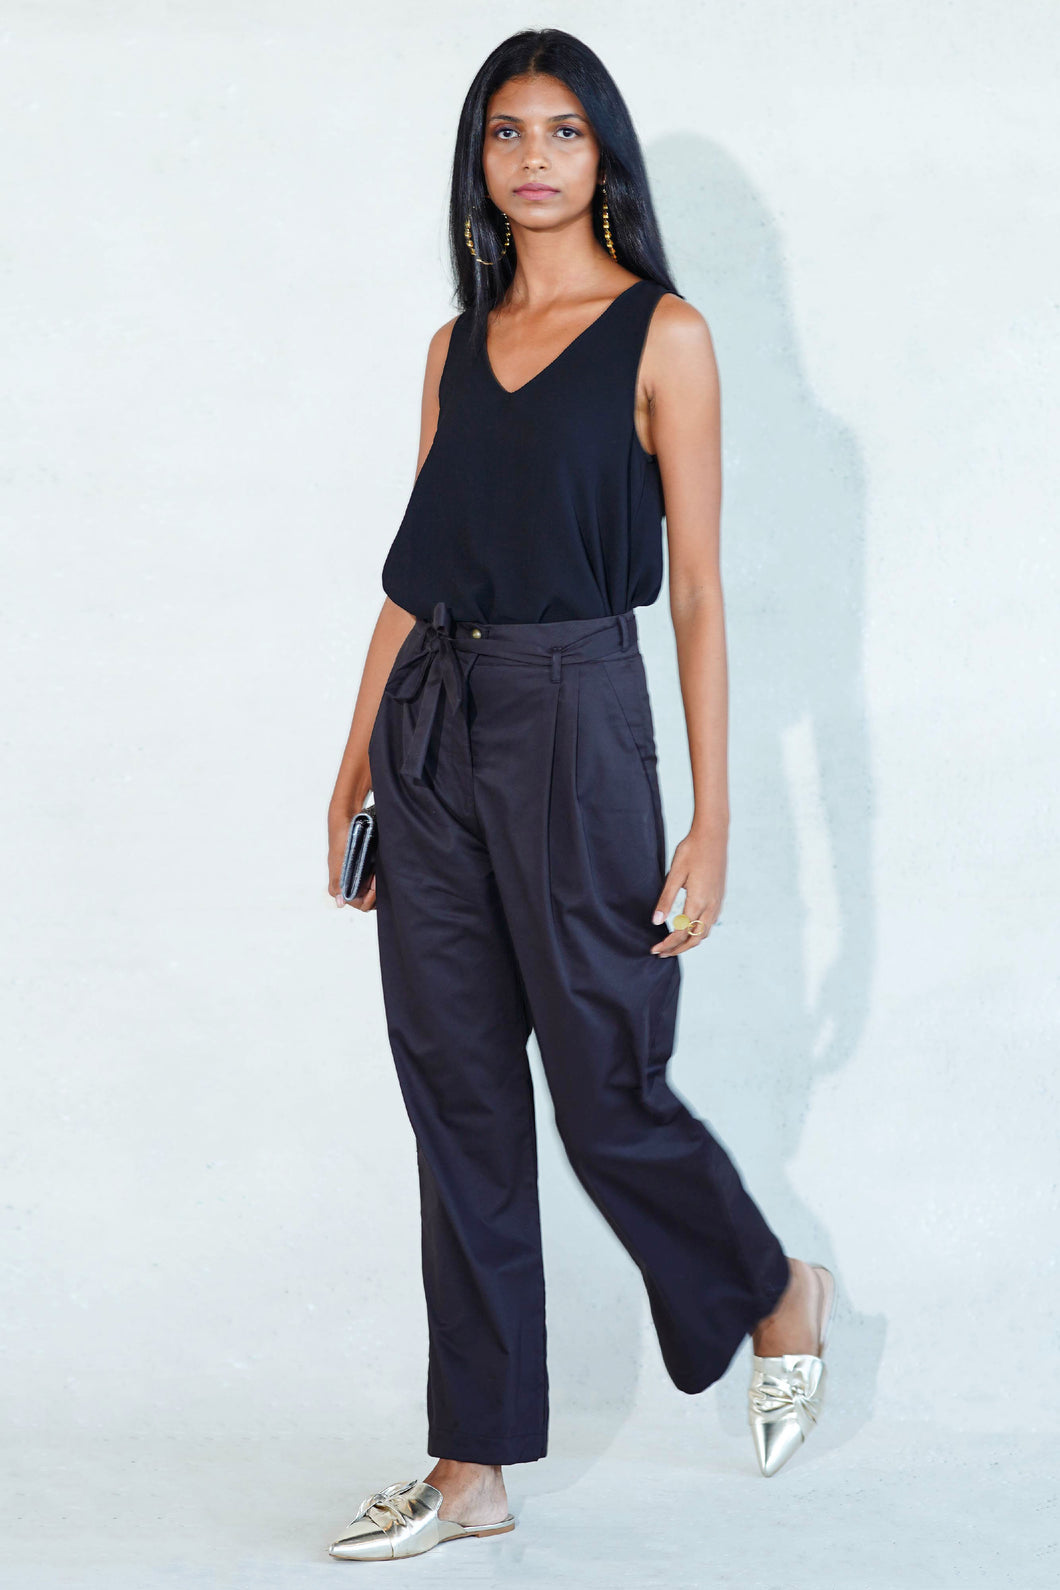 Mendes Ceylon Mara High-waist Black Pants